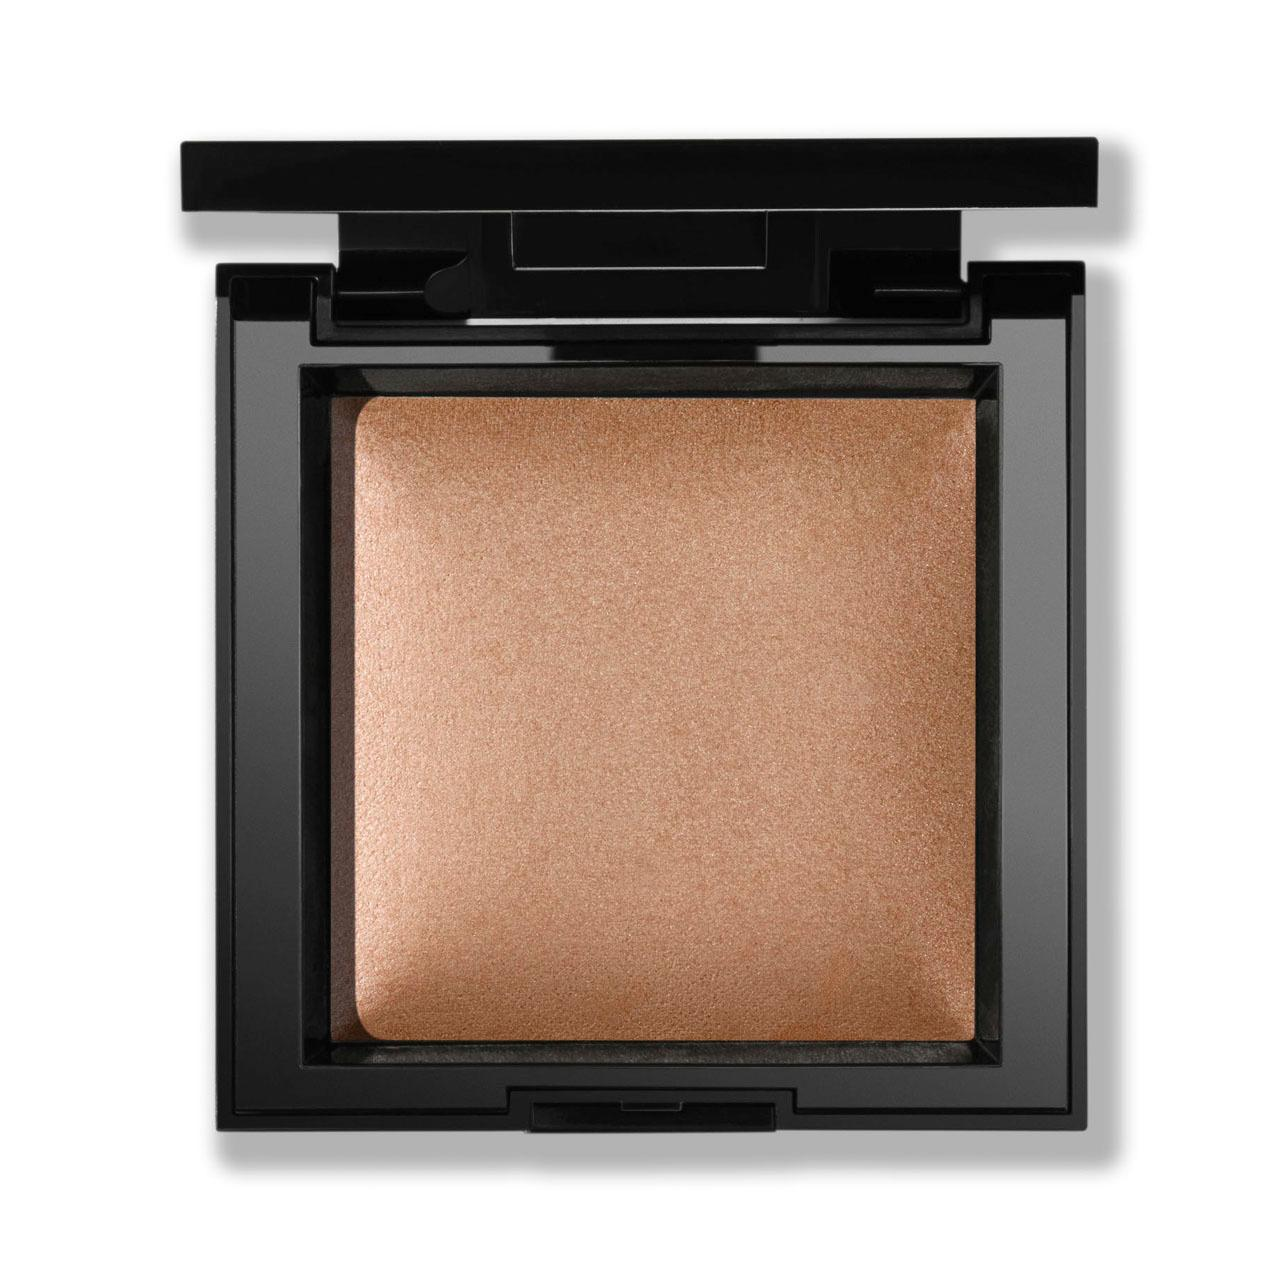 An image of bareMinerals Invisible Bronze Medium